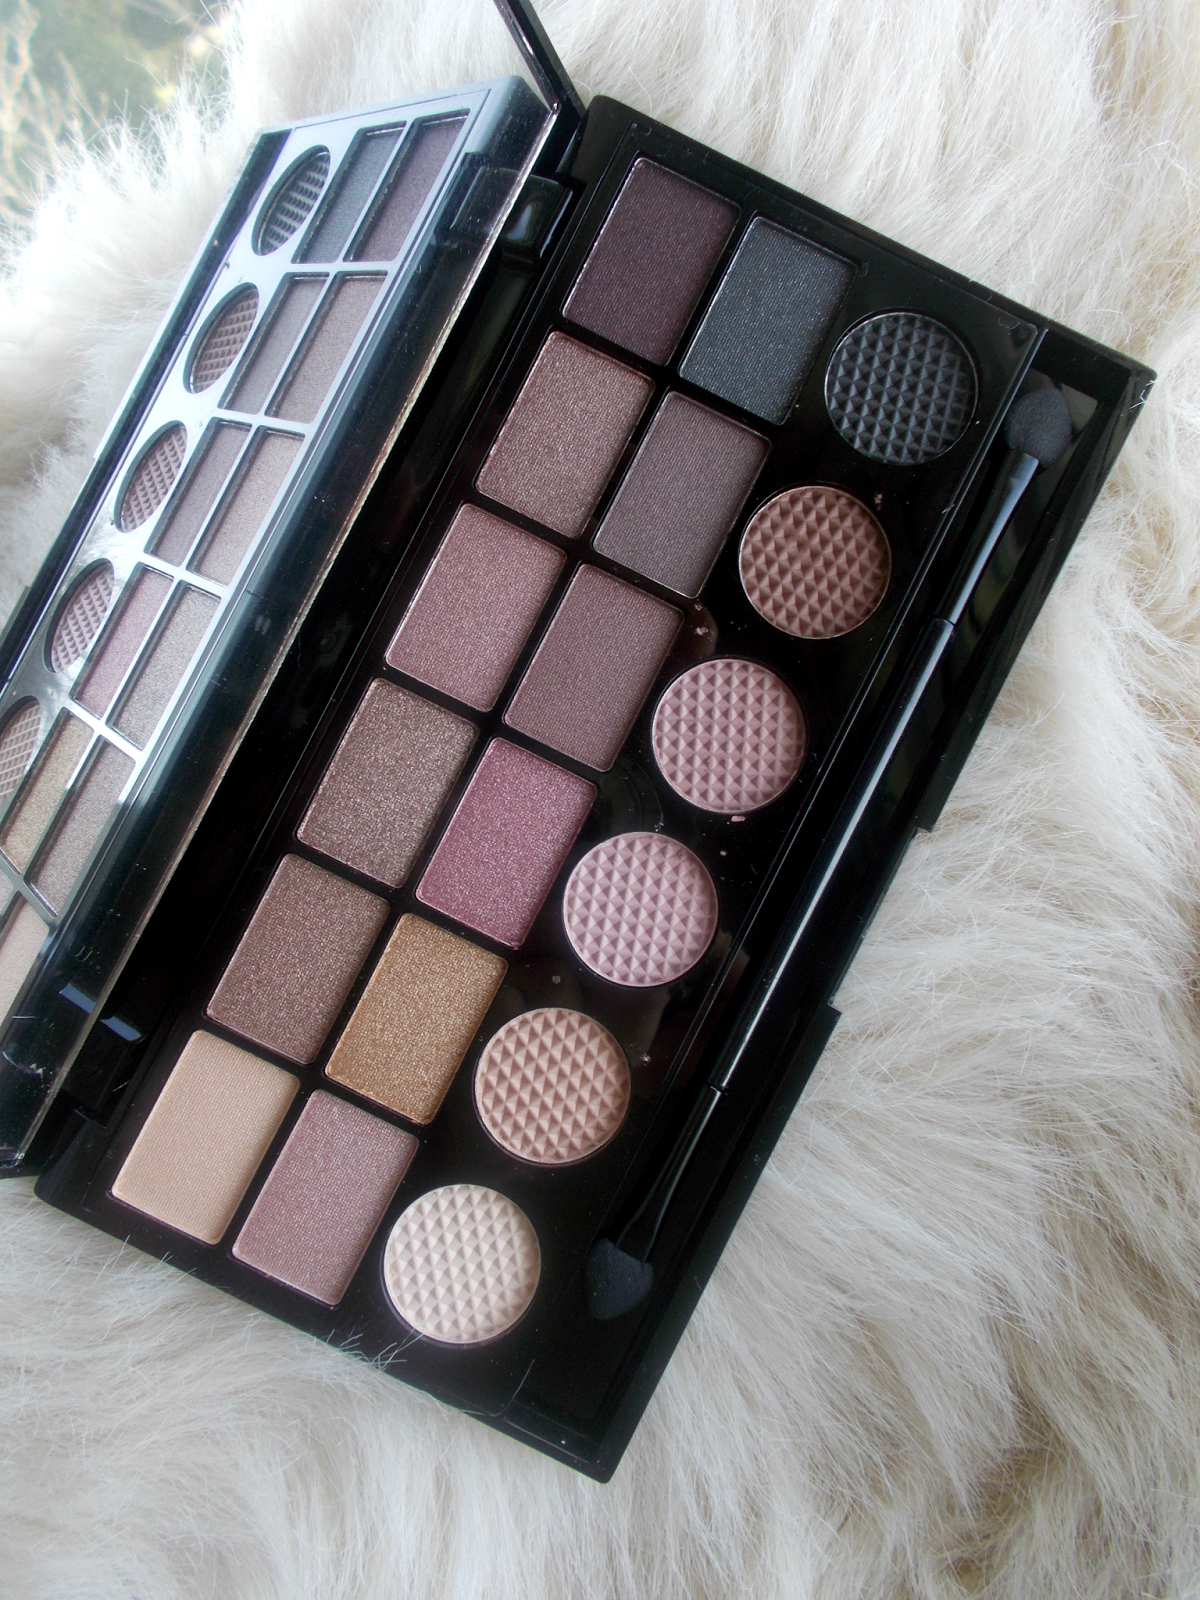 Makeup Revolution // What You Waiting For? palette review